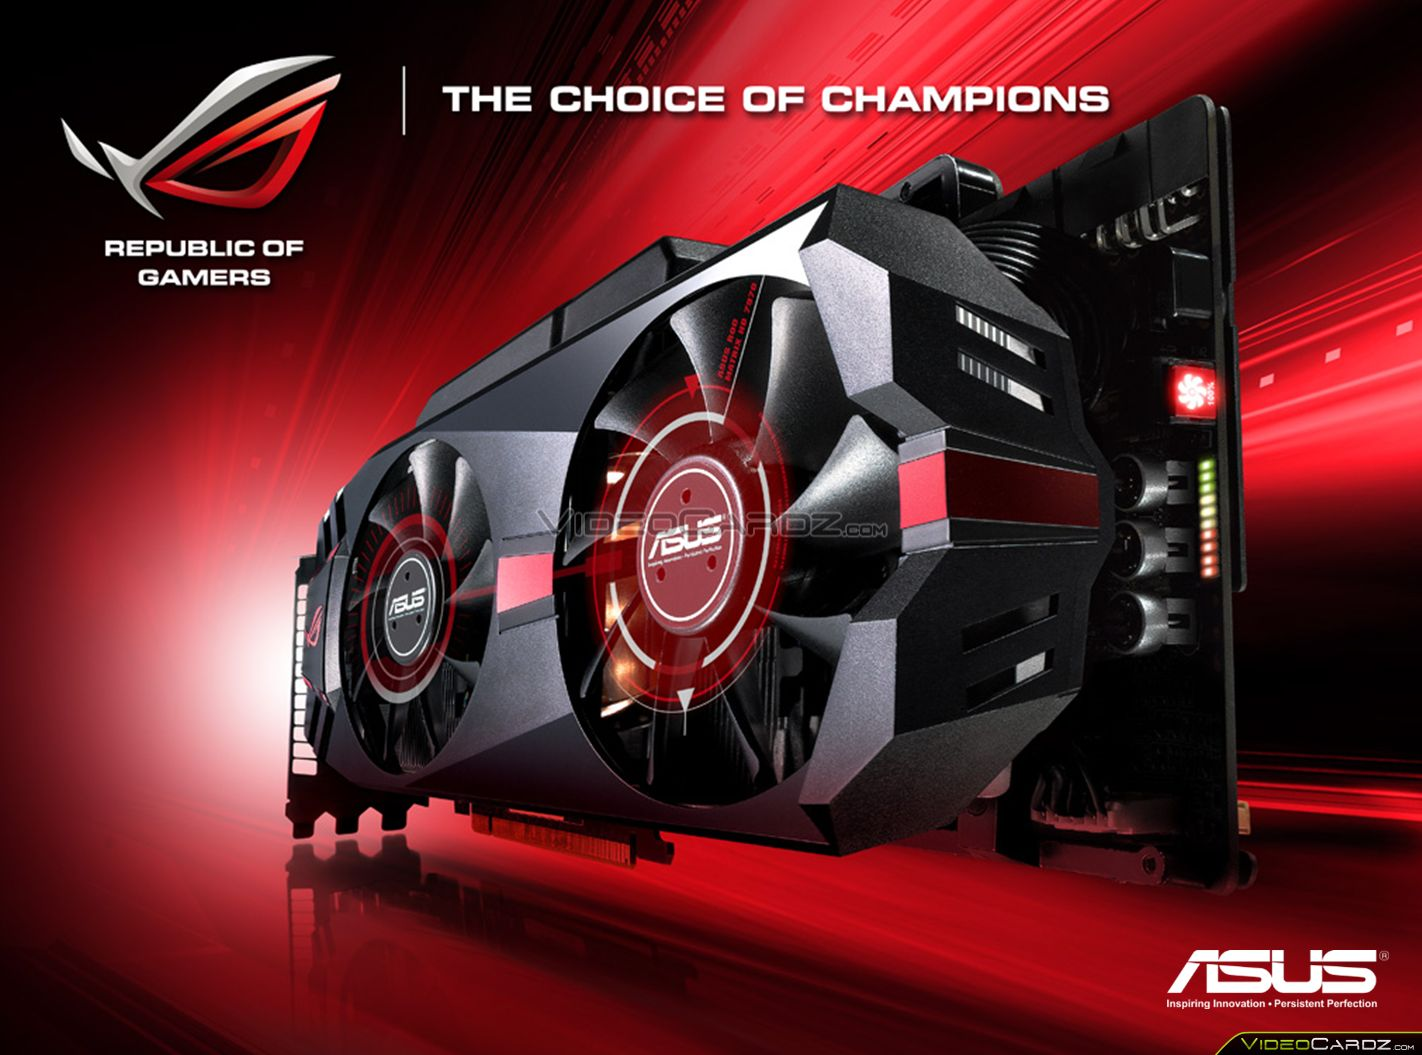 ASUS ROG MATRIX R9 290X Platinum Graphics Card Pictured Black Heatsink And Powerful 14 Phase VRM